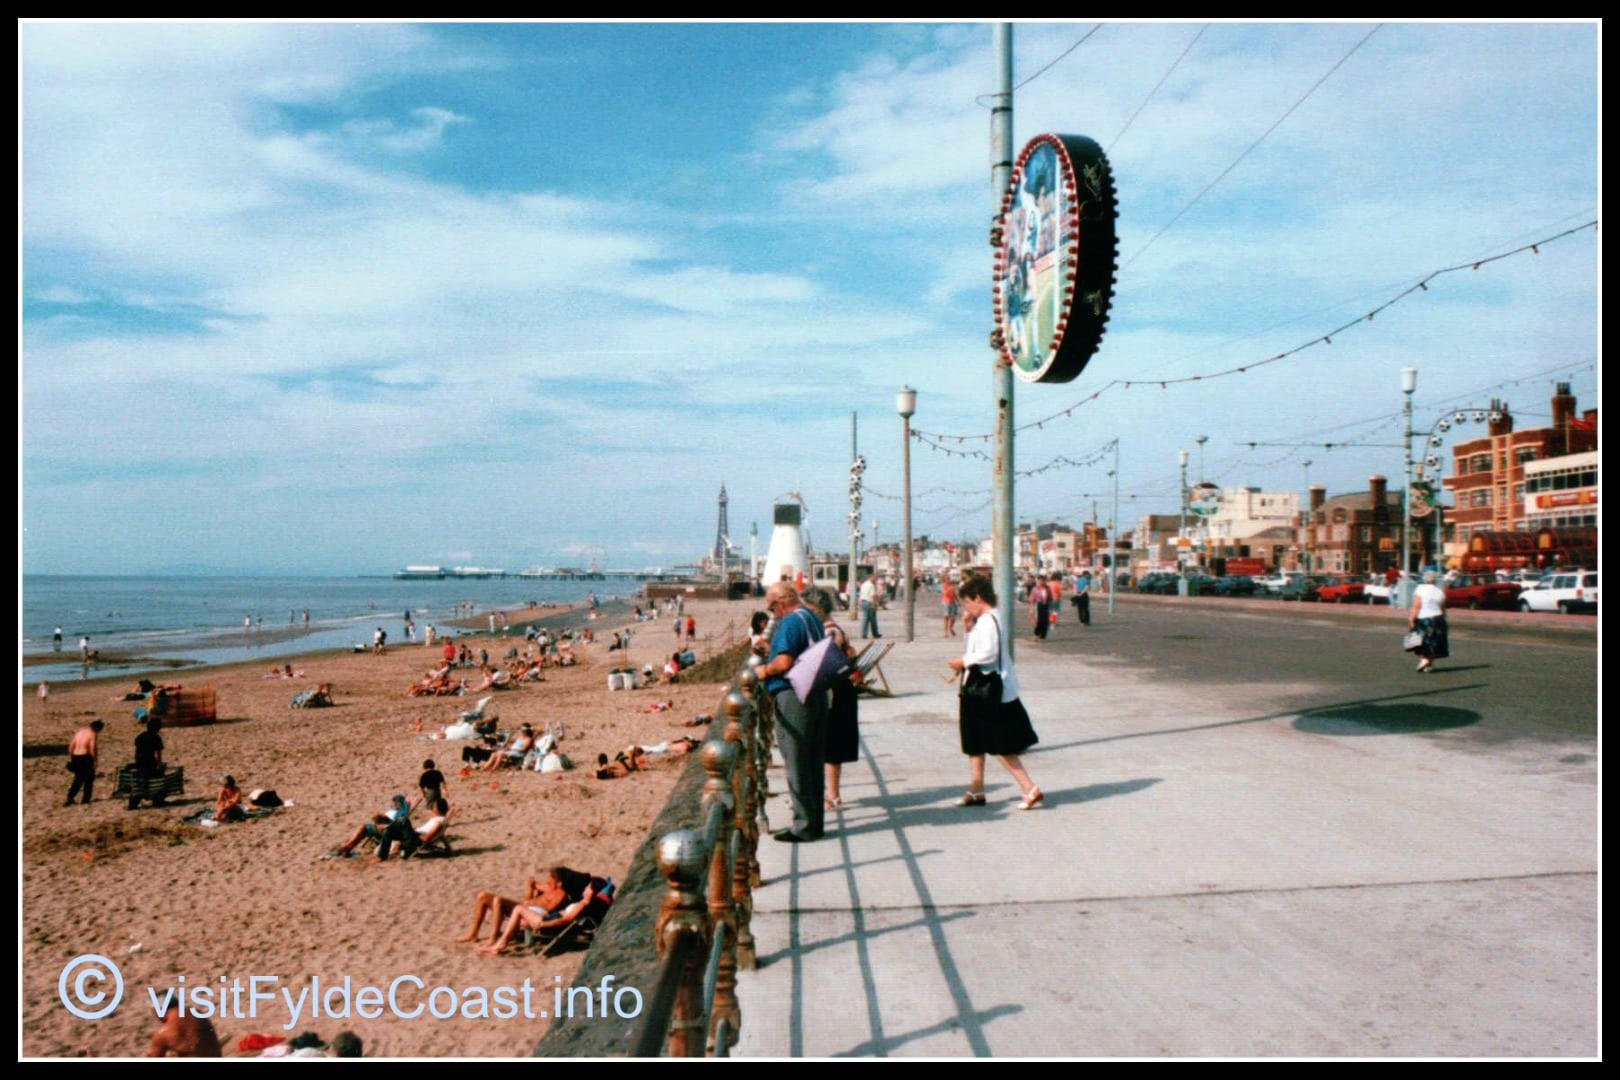 Blackpool South Promenade and windmill pumping station. Our Old Blackpool Photos - archives from Visit Fylde Coast